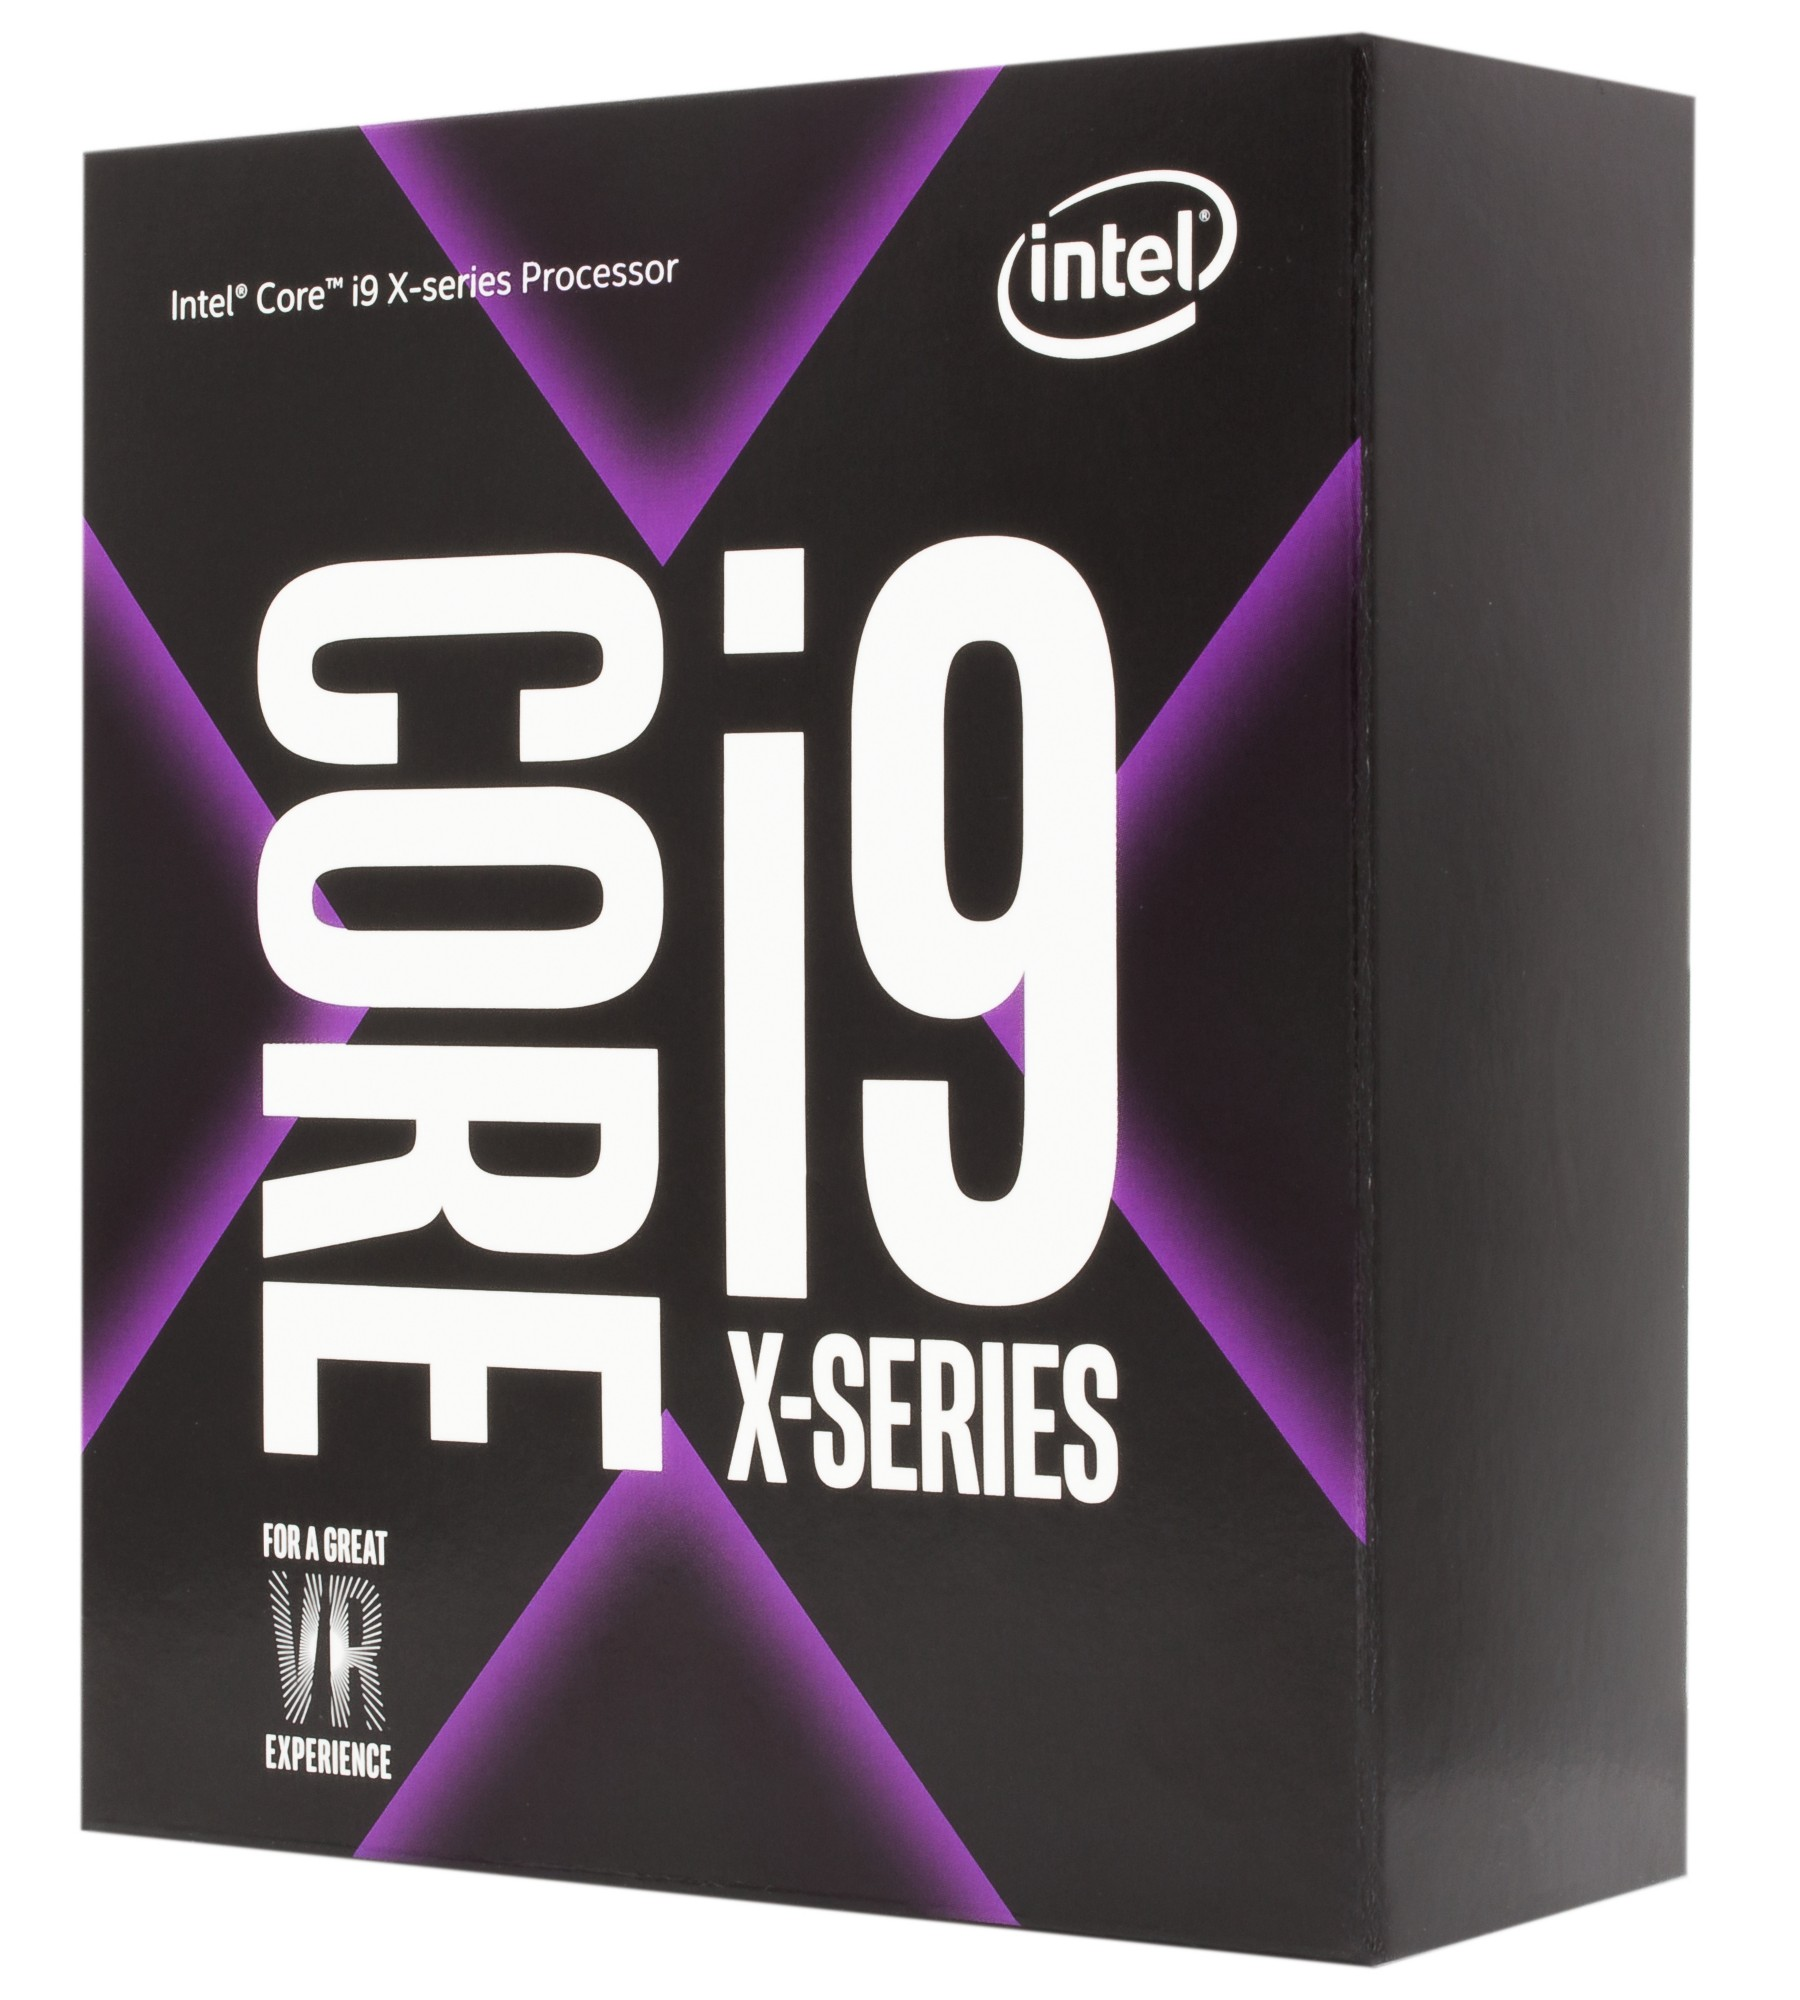 Intel Core ® ™ i9-7940X X-series Processor (19.25M Cache, up to 4.30 GHz) 3.1GHz 19.25MB Smart Cache Box processor